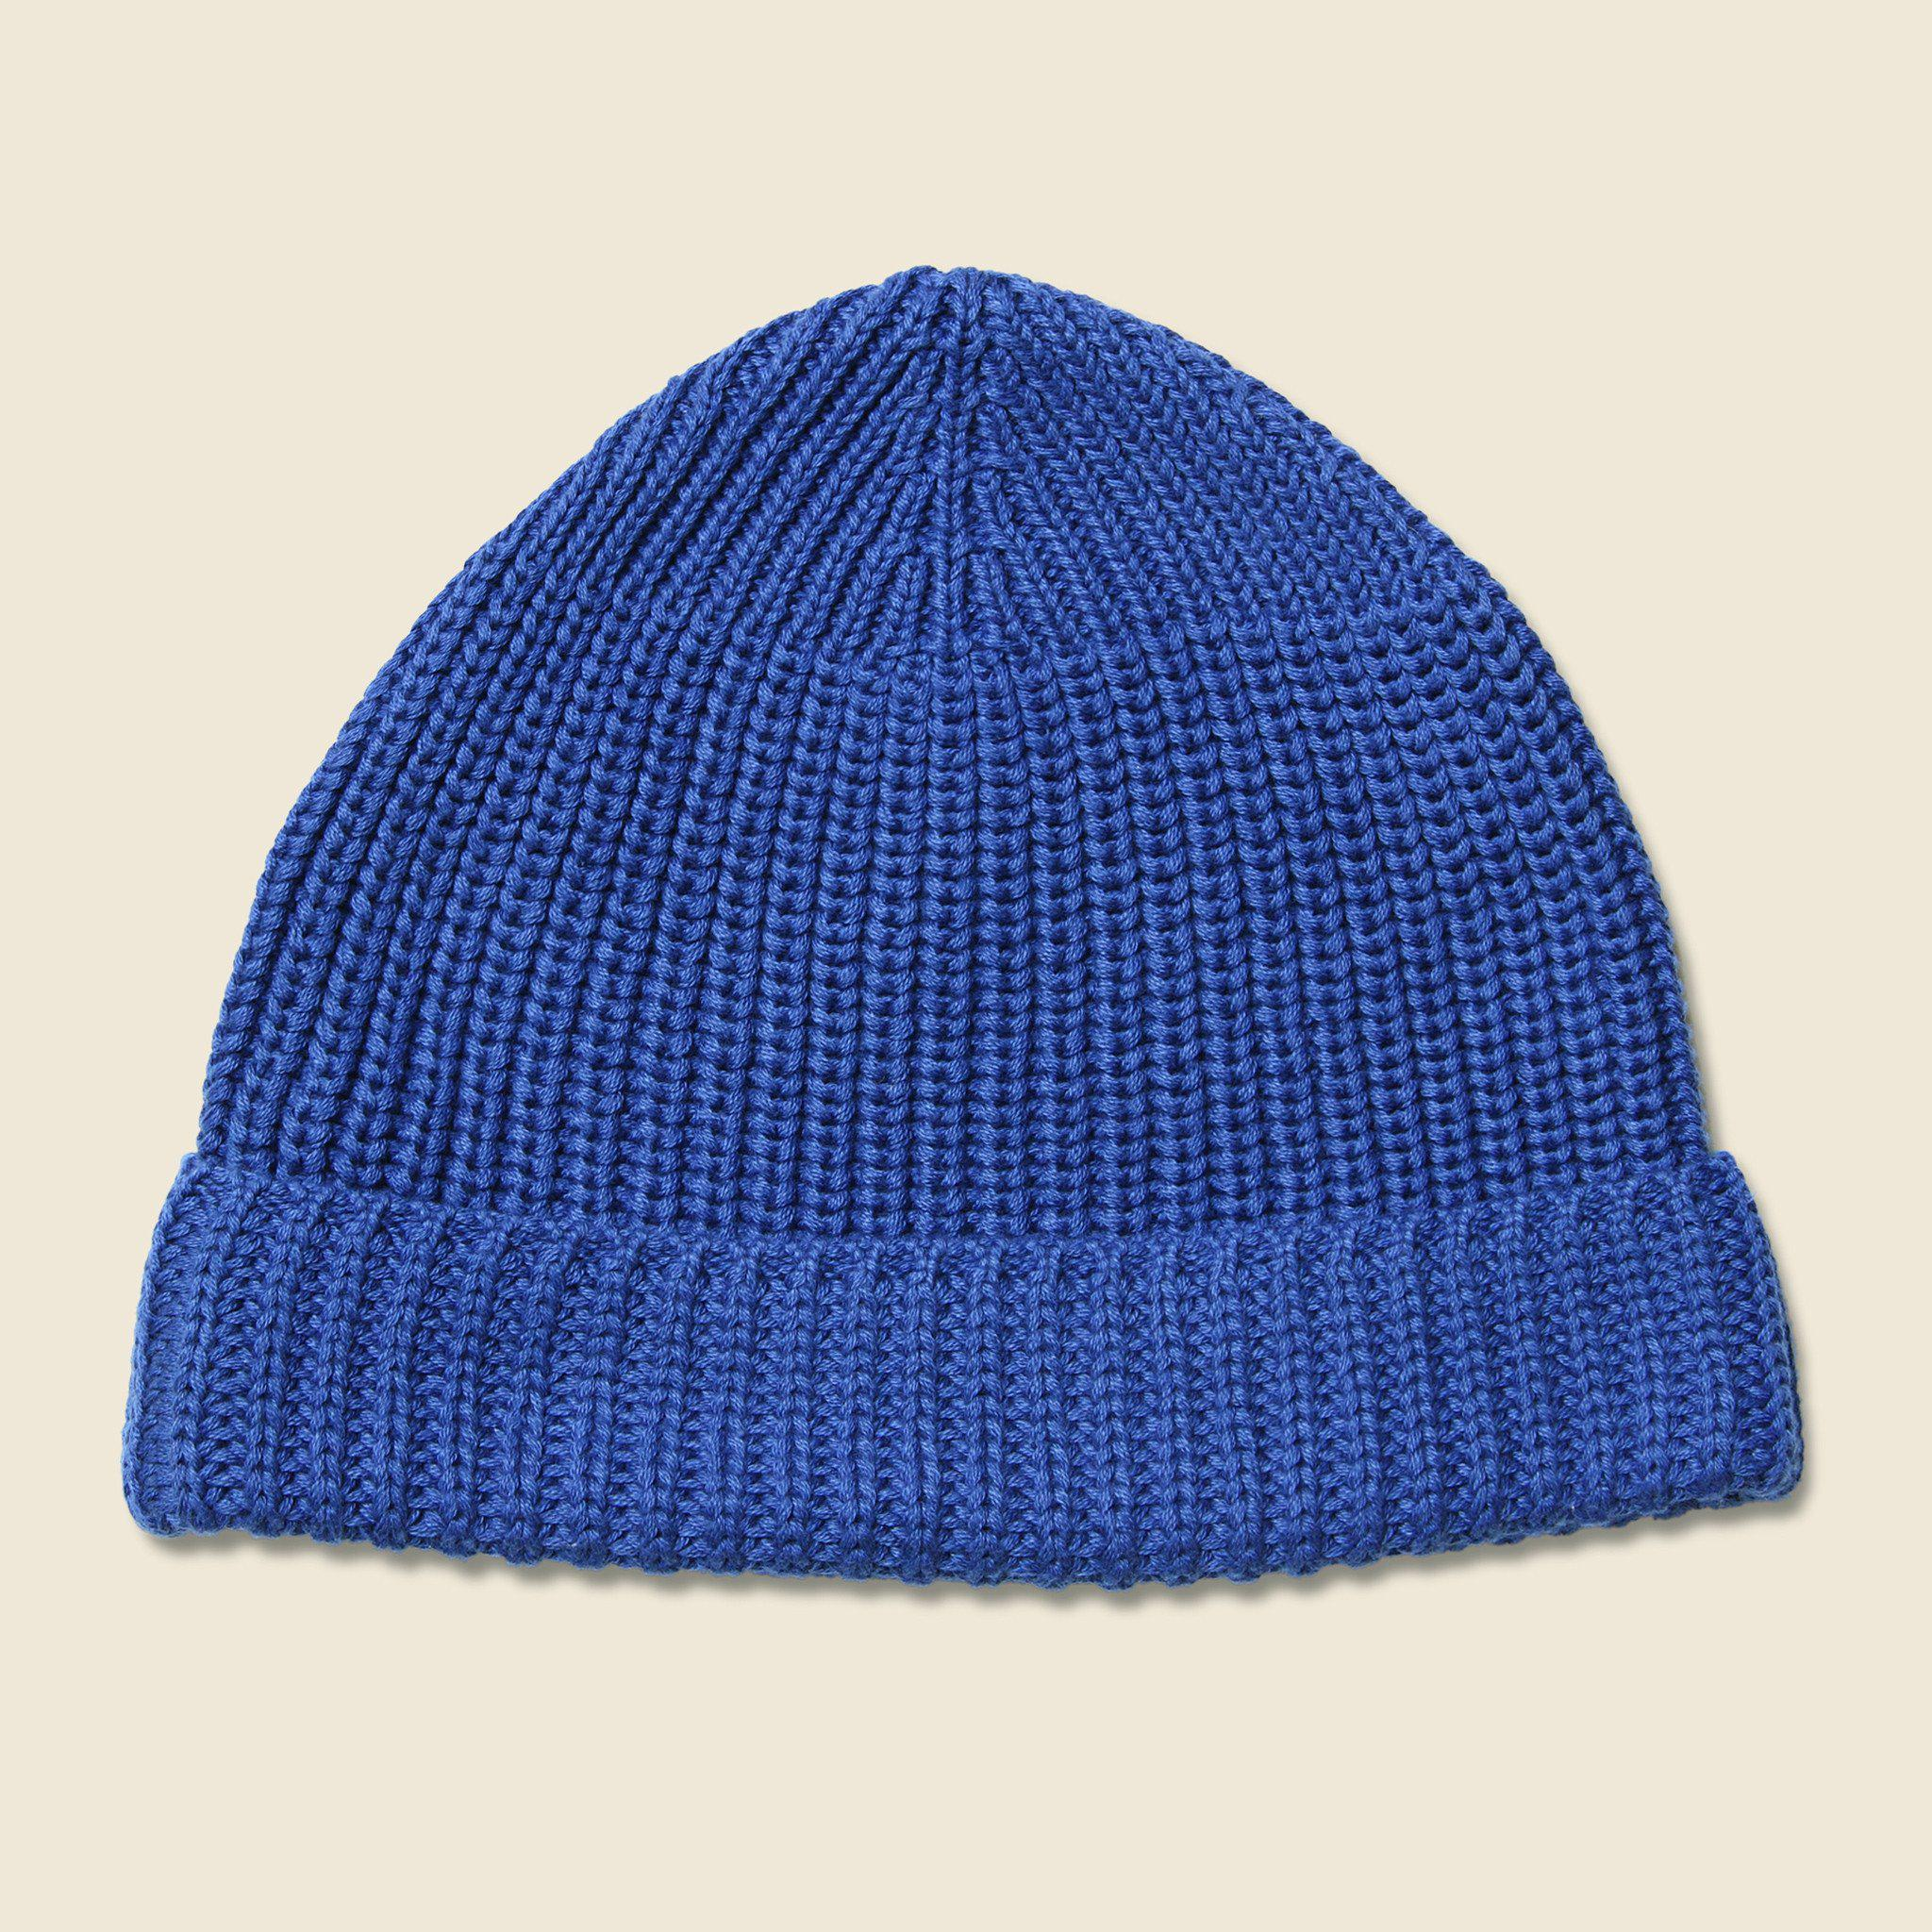 24042276d5b Lyst - Universal Works Cotton Rib Beanie - Blue in Blue for Men